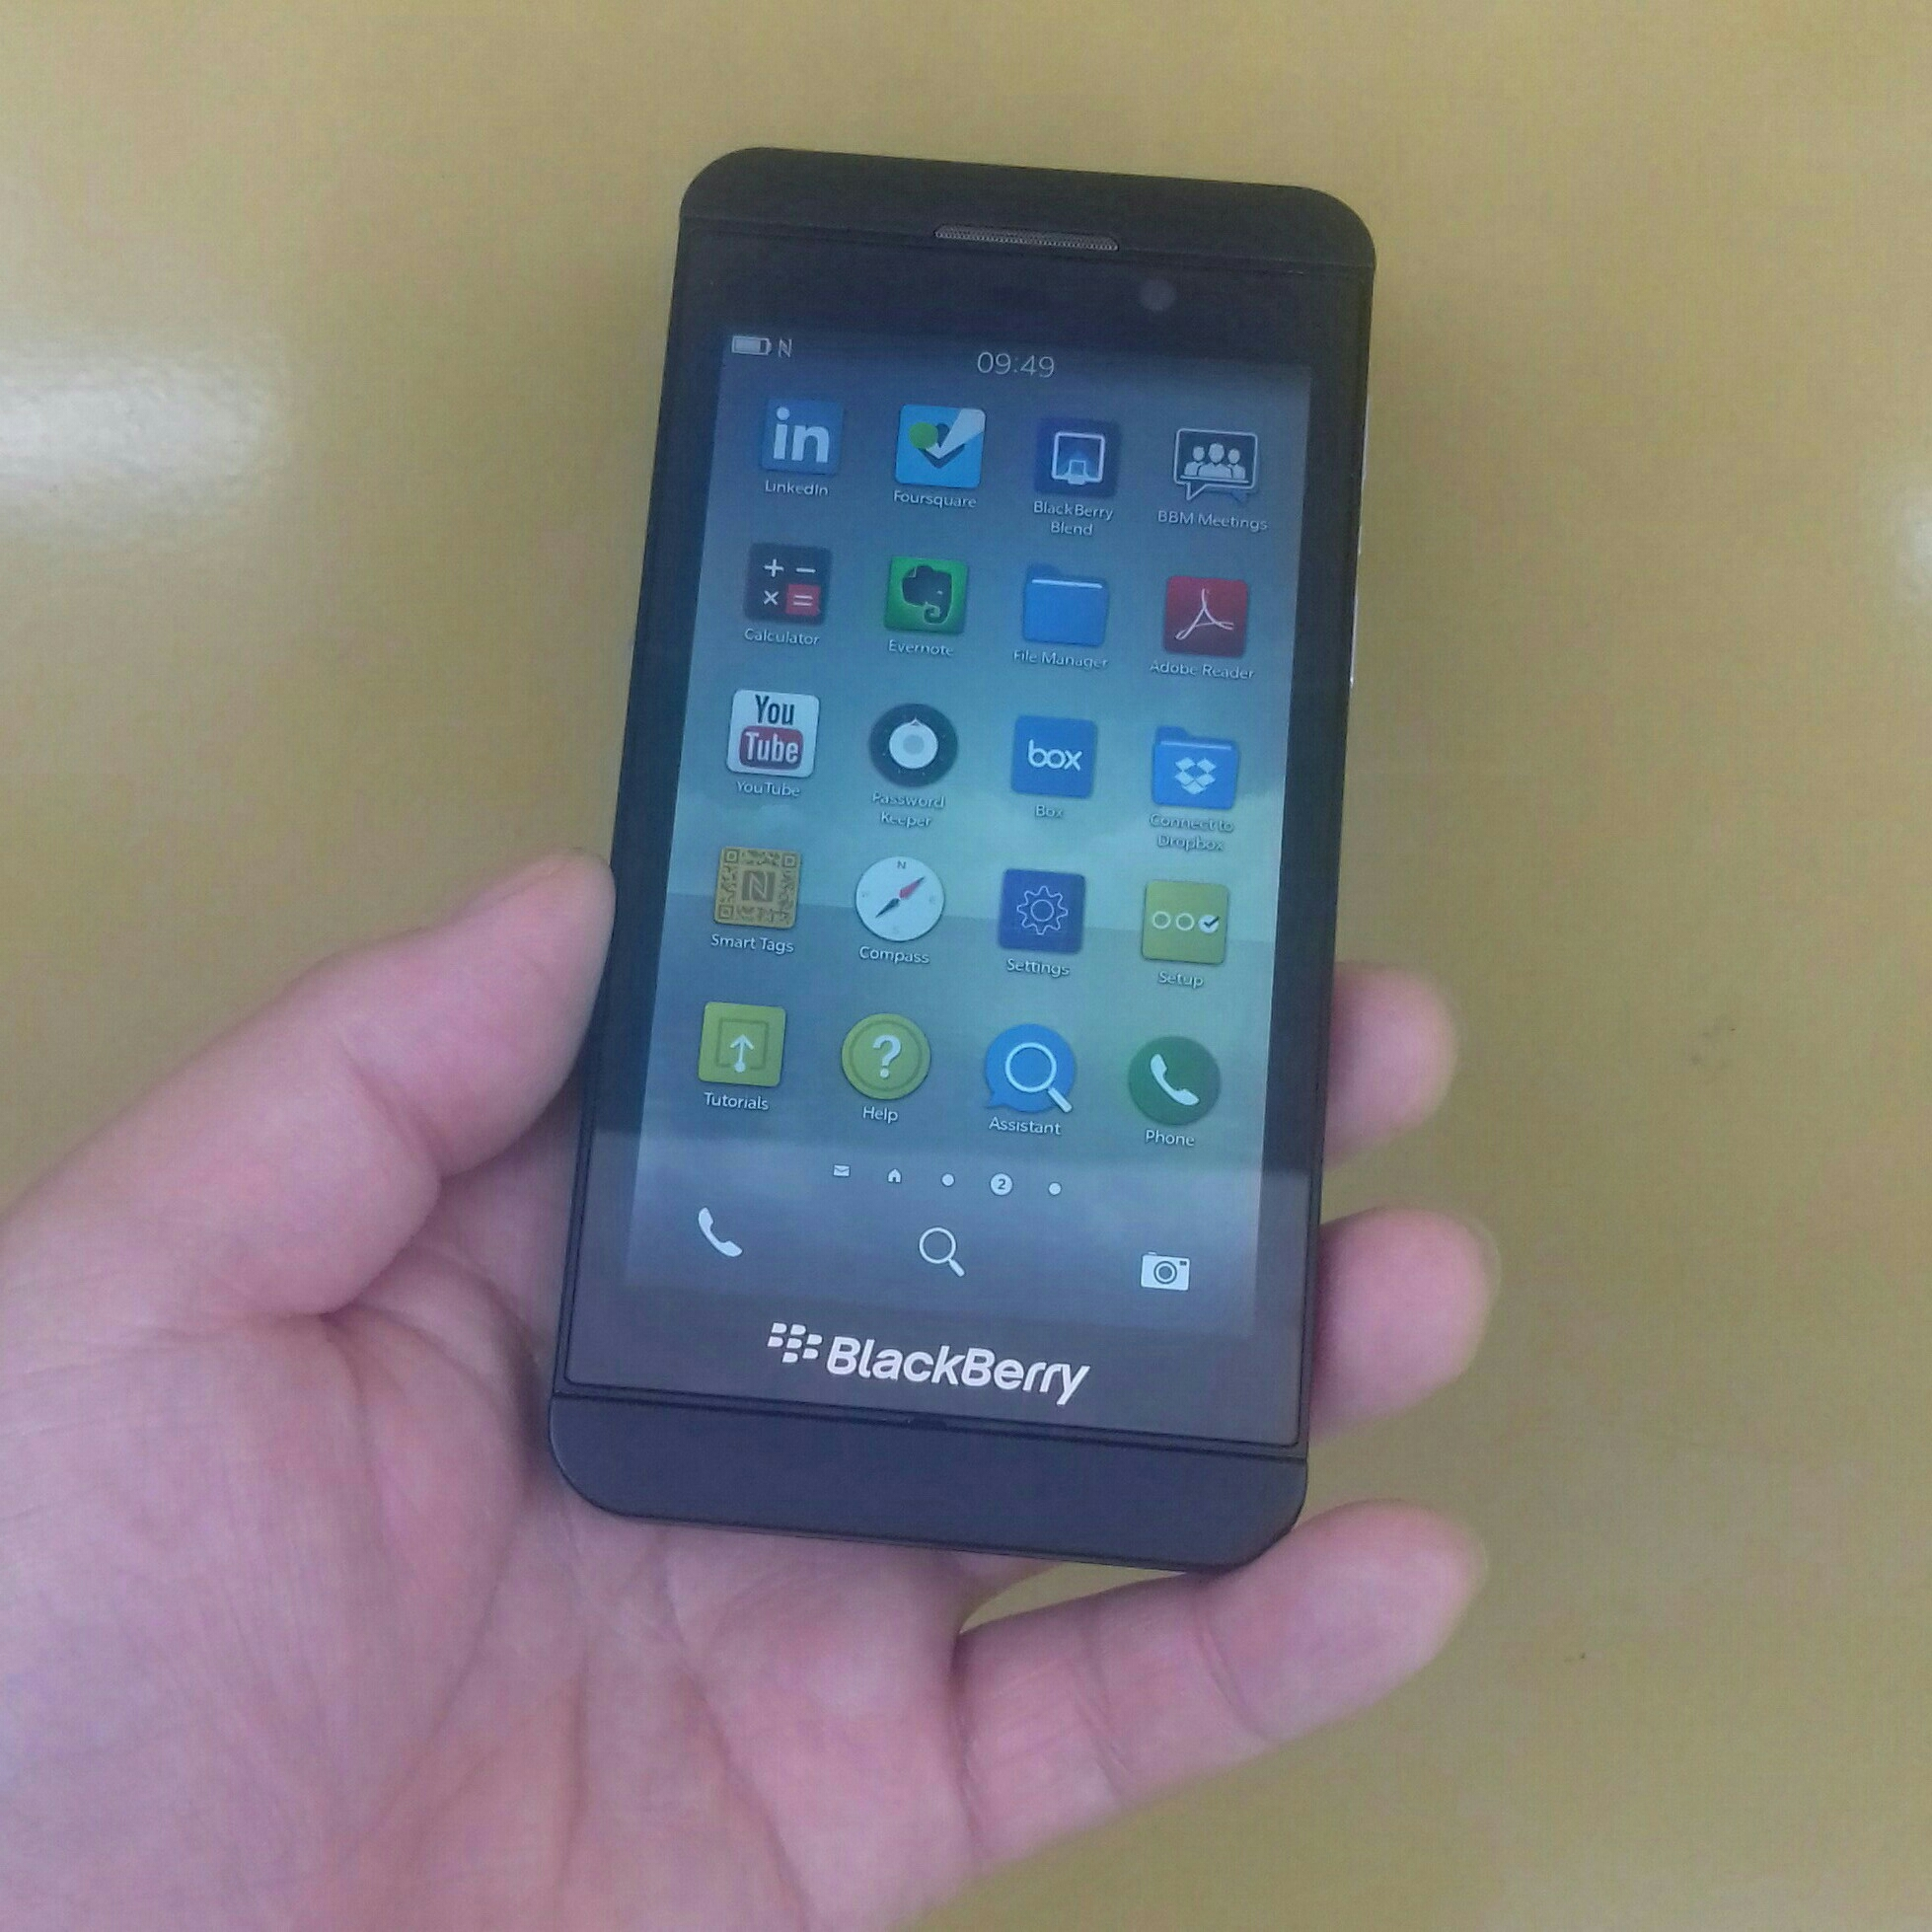 Blackberry Z10 Used Mobile & Charger Only. 2 GB Ram, 16 GB Memory.